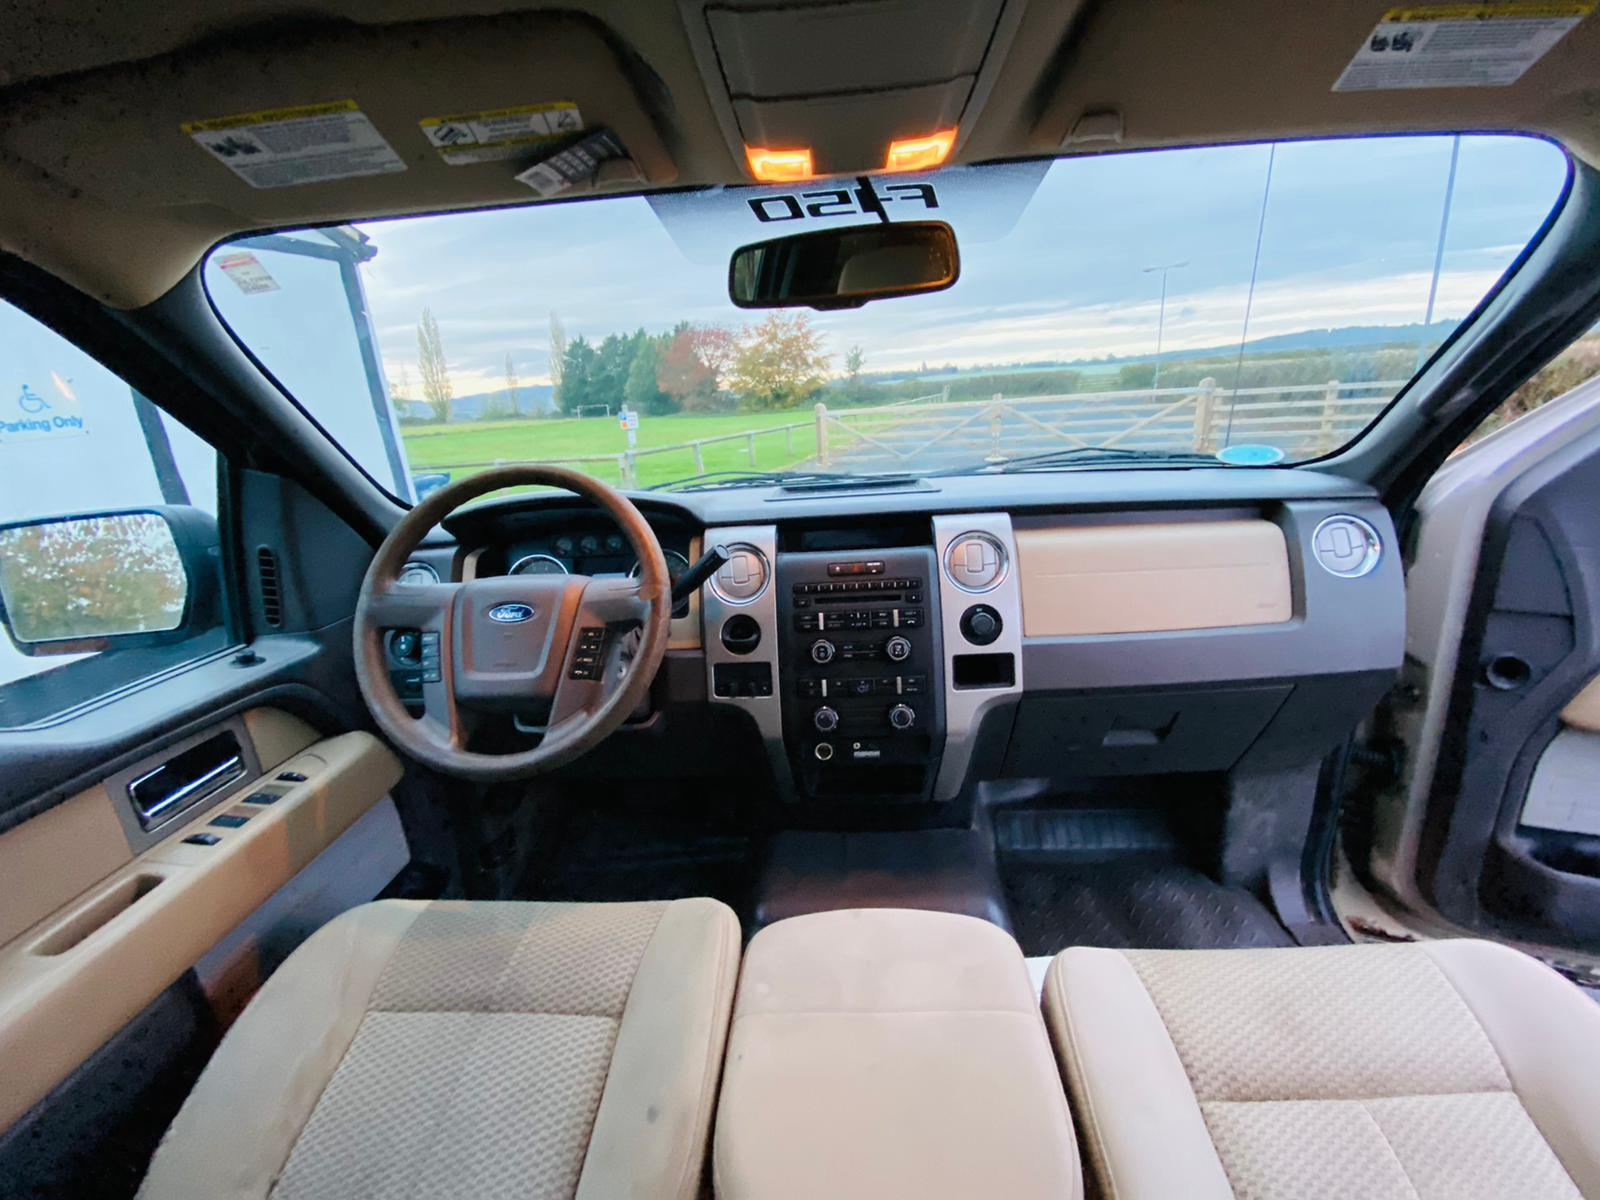 (RESERVE MET) Ford F-150 XLT 4.6L V8 Supercab - 2010 Year - 6 Seats - Fresh Imports - Image 27 of 39